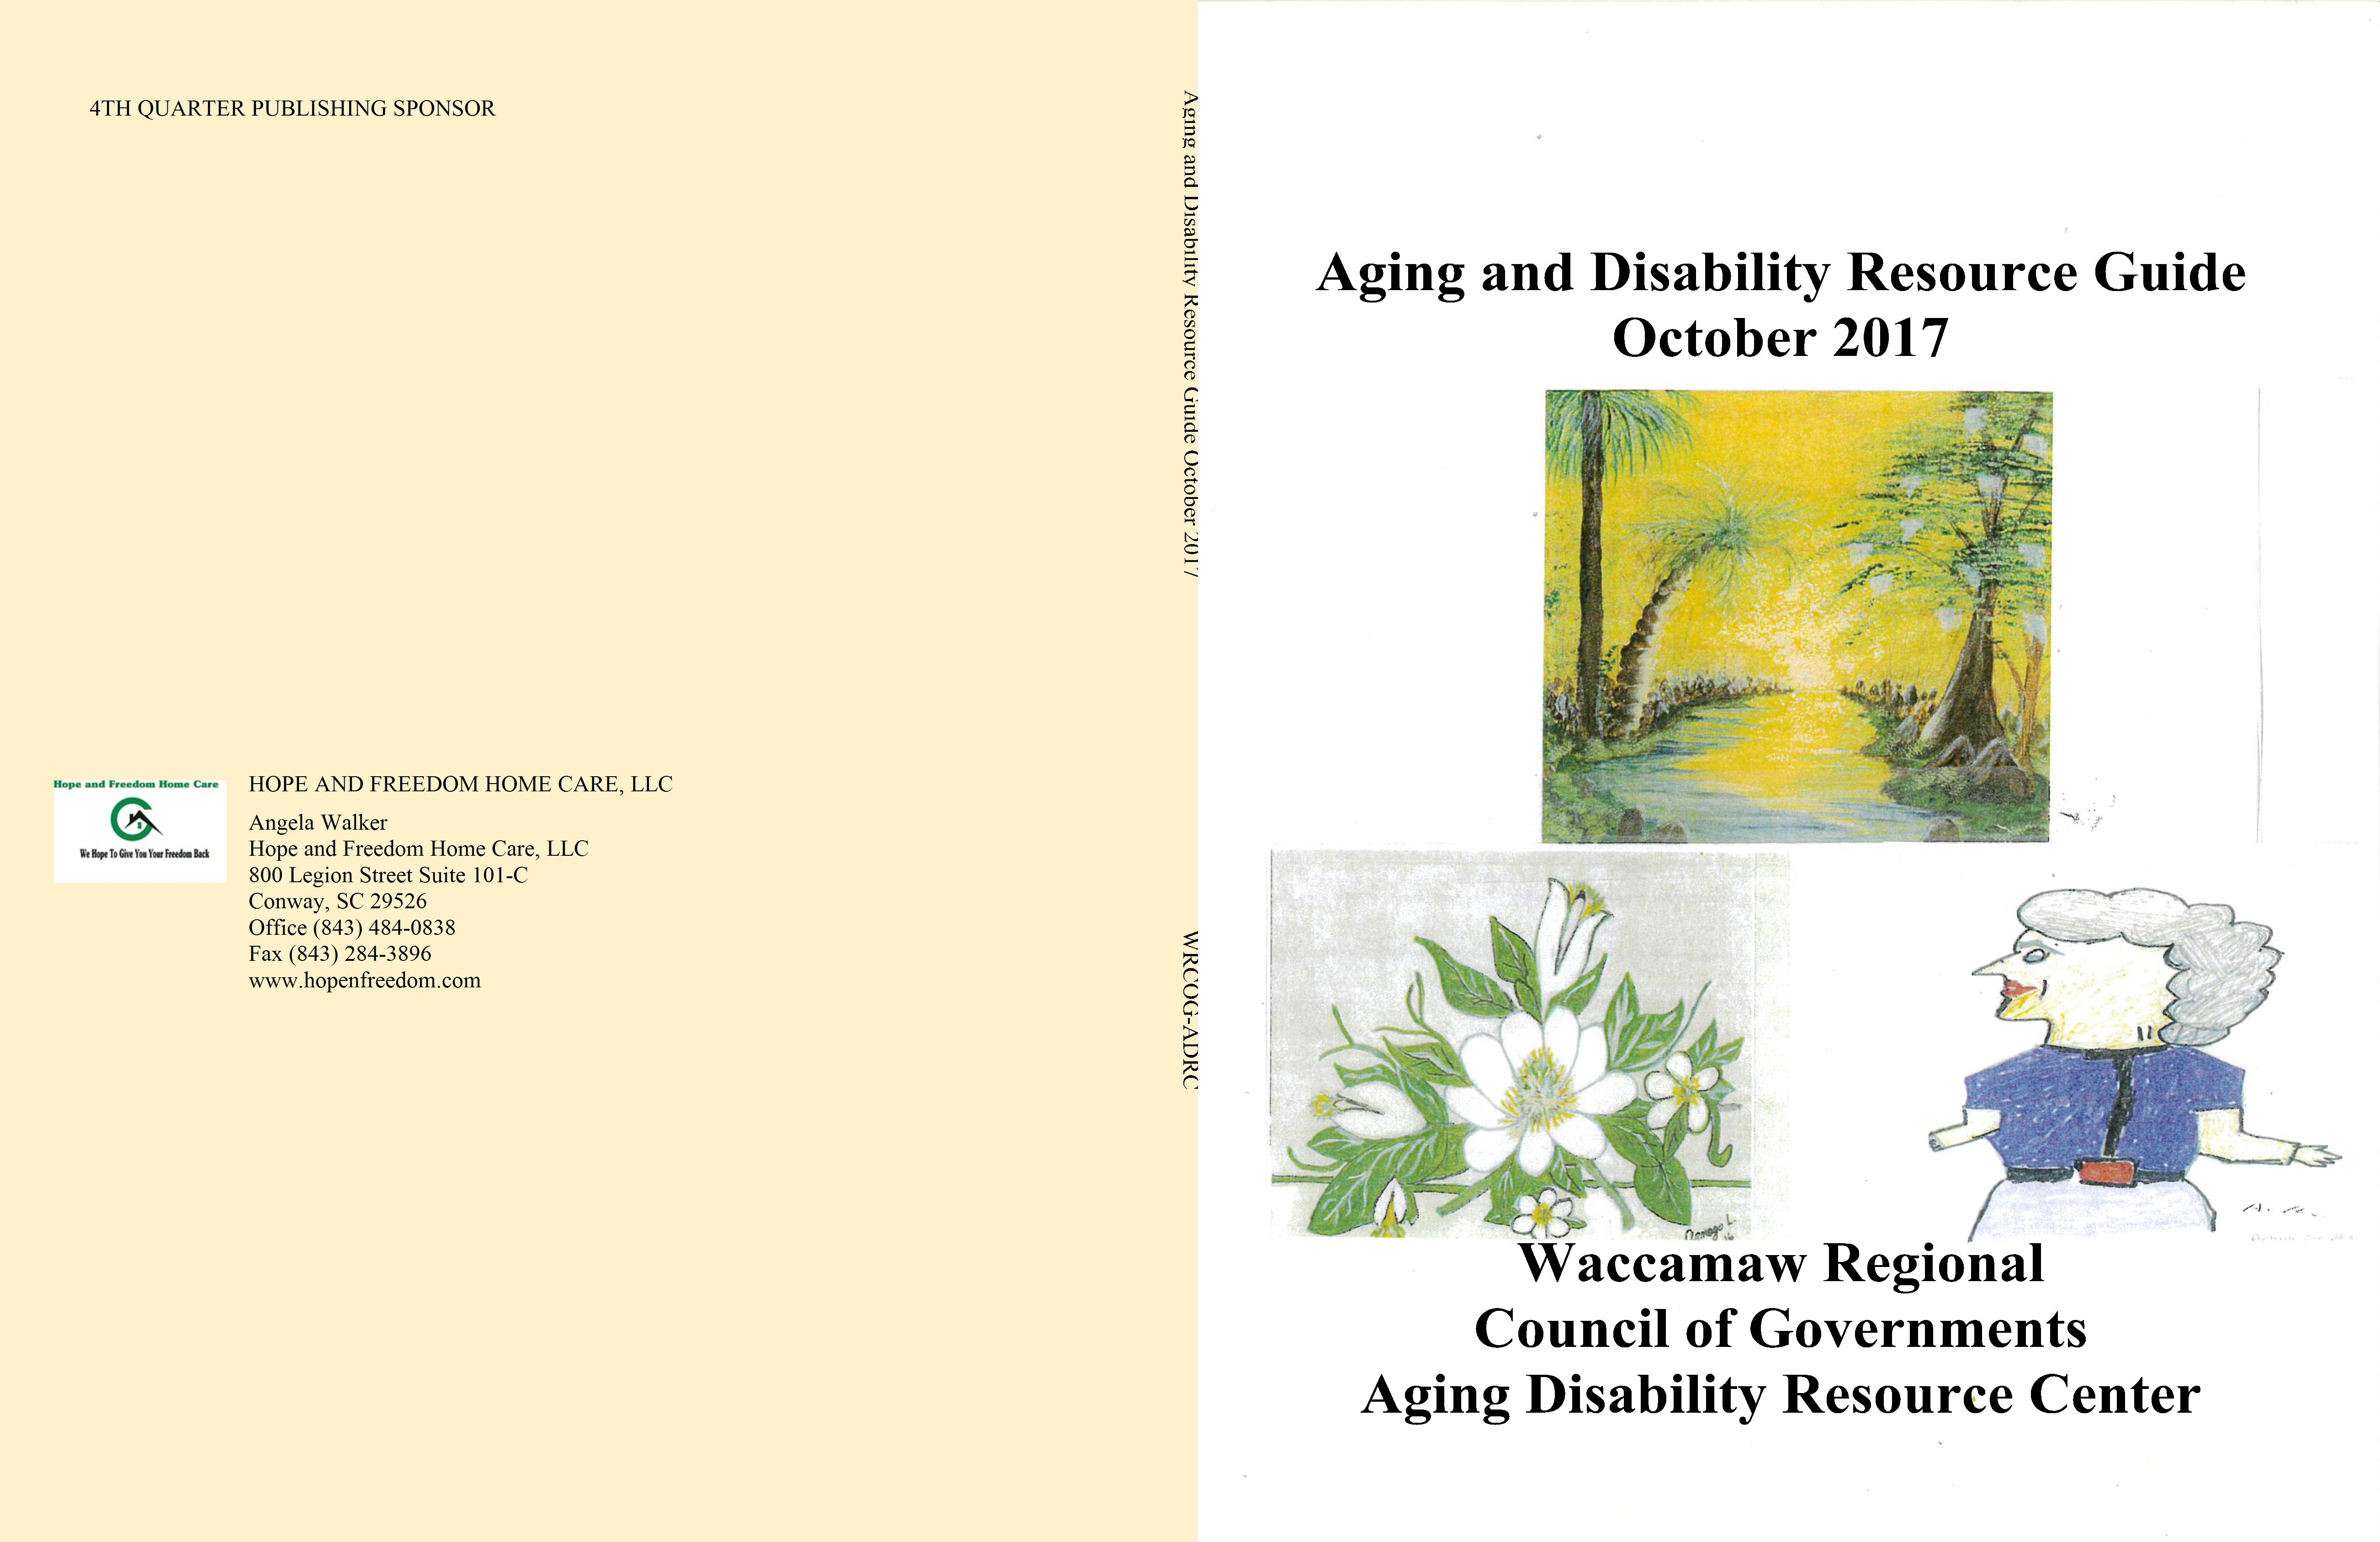 Aging and Disability Resource Guide October 2017 cover image